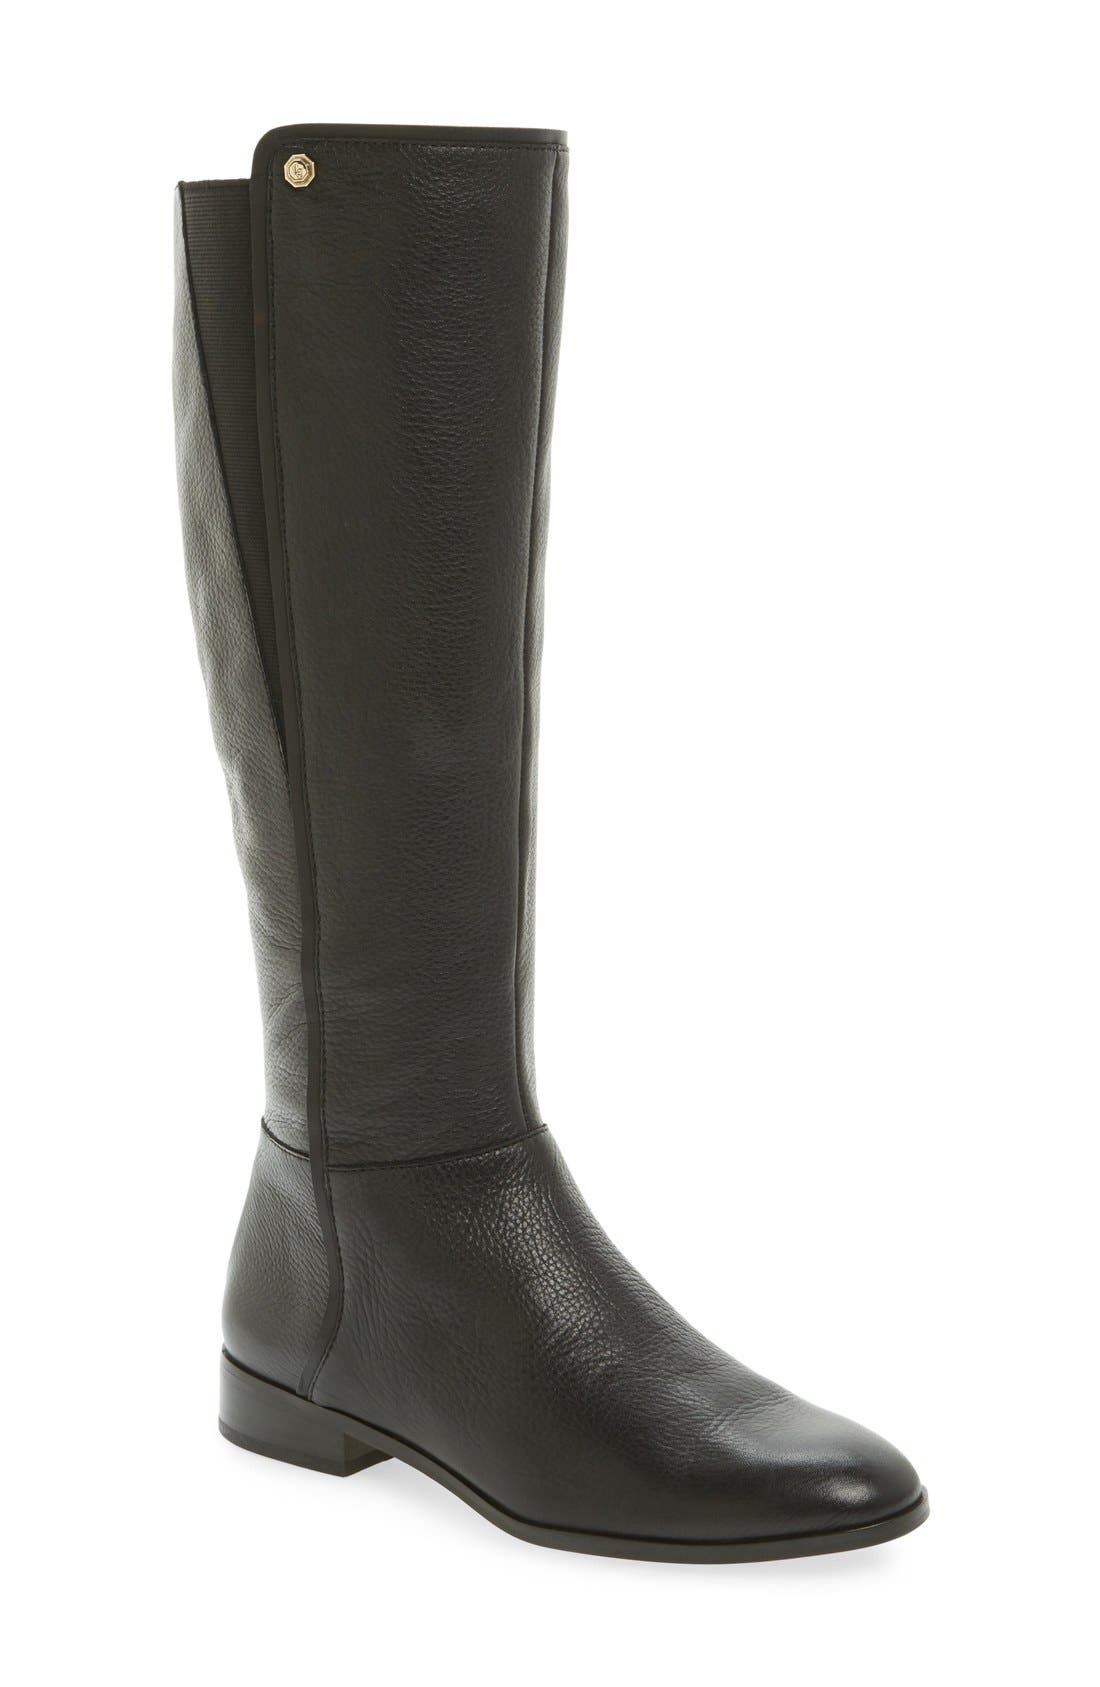 Alternate Image 1 Selected - Louise et Cie Zaya Knee High Boot (Women)